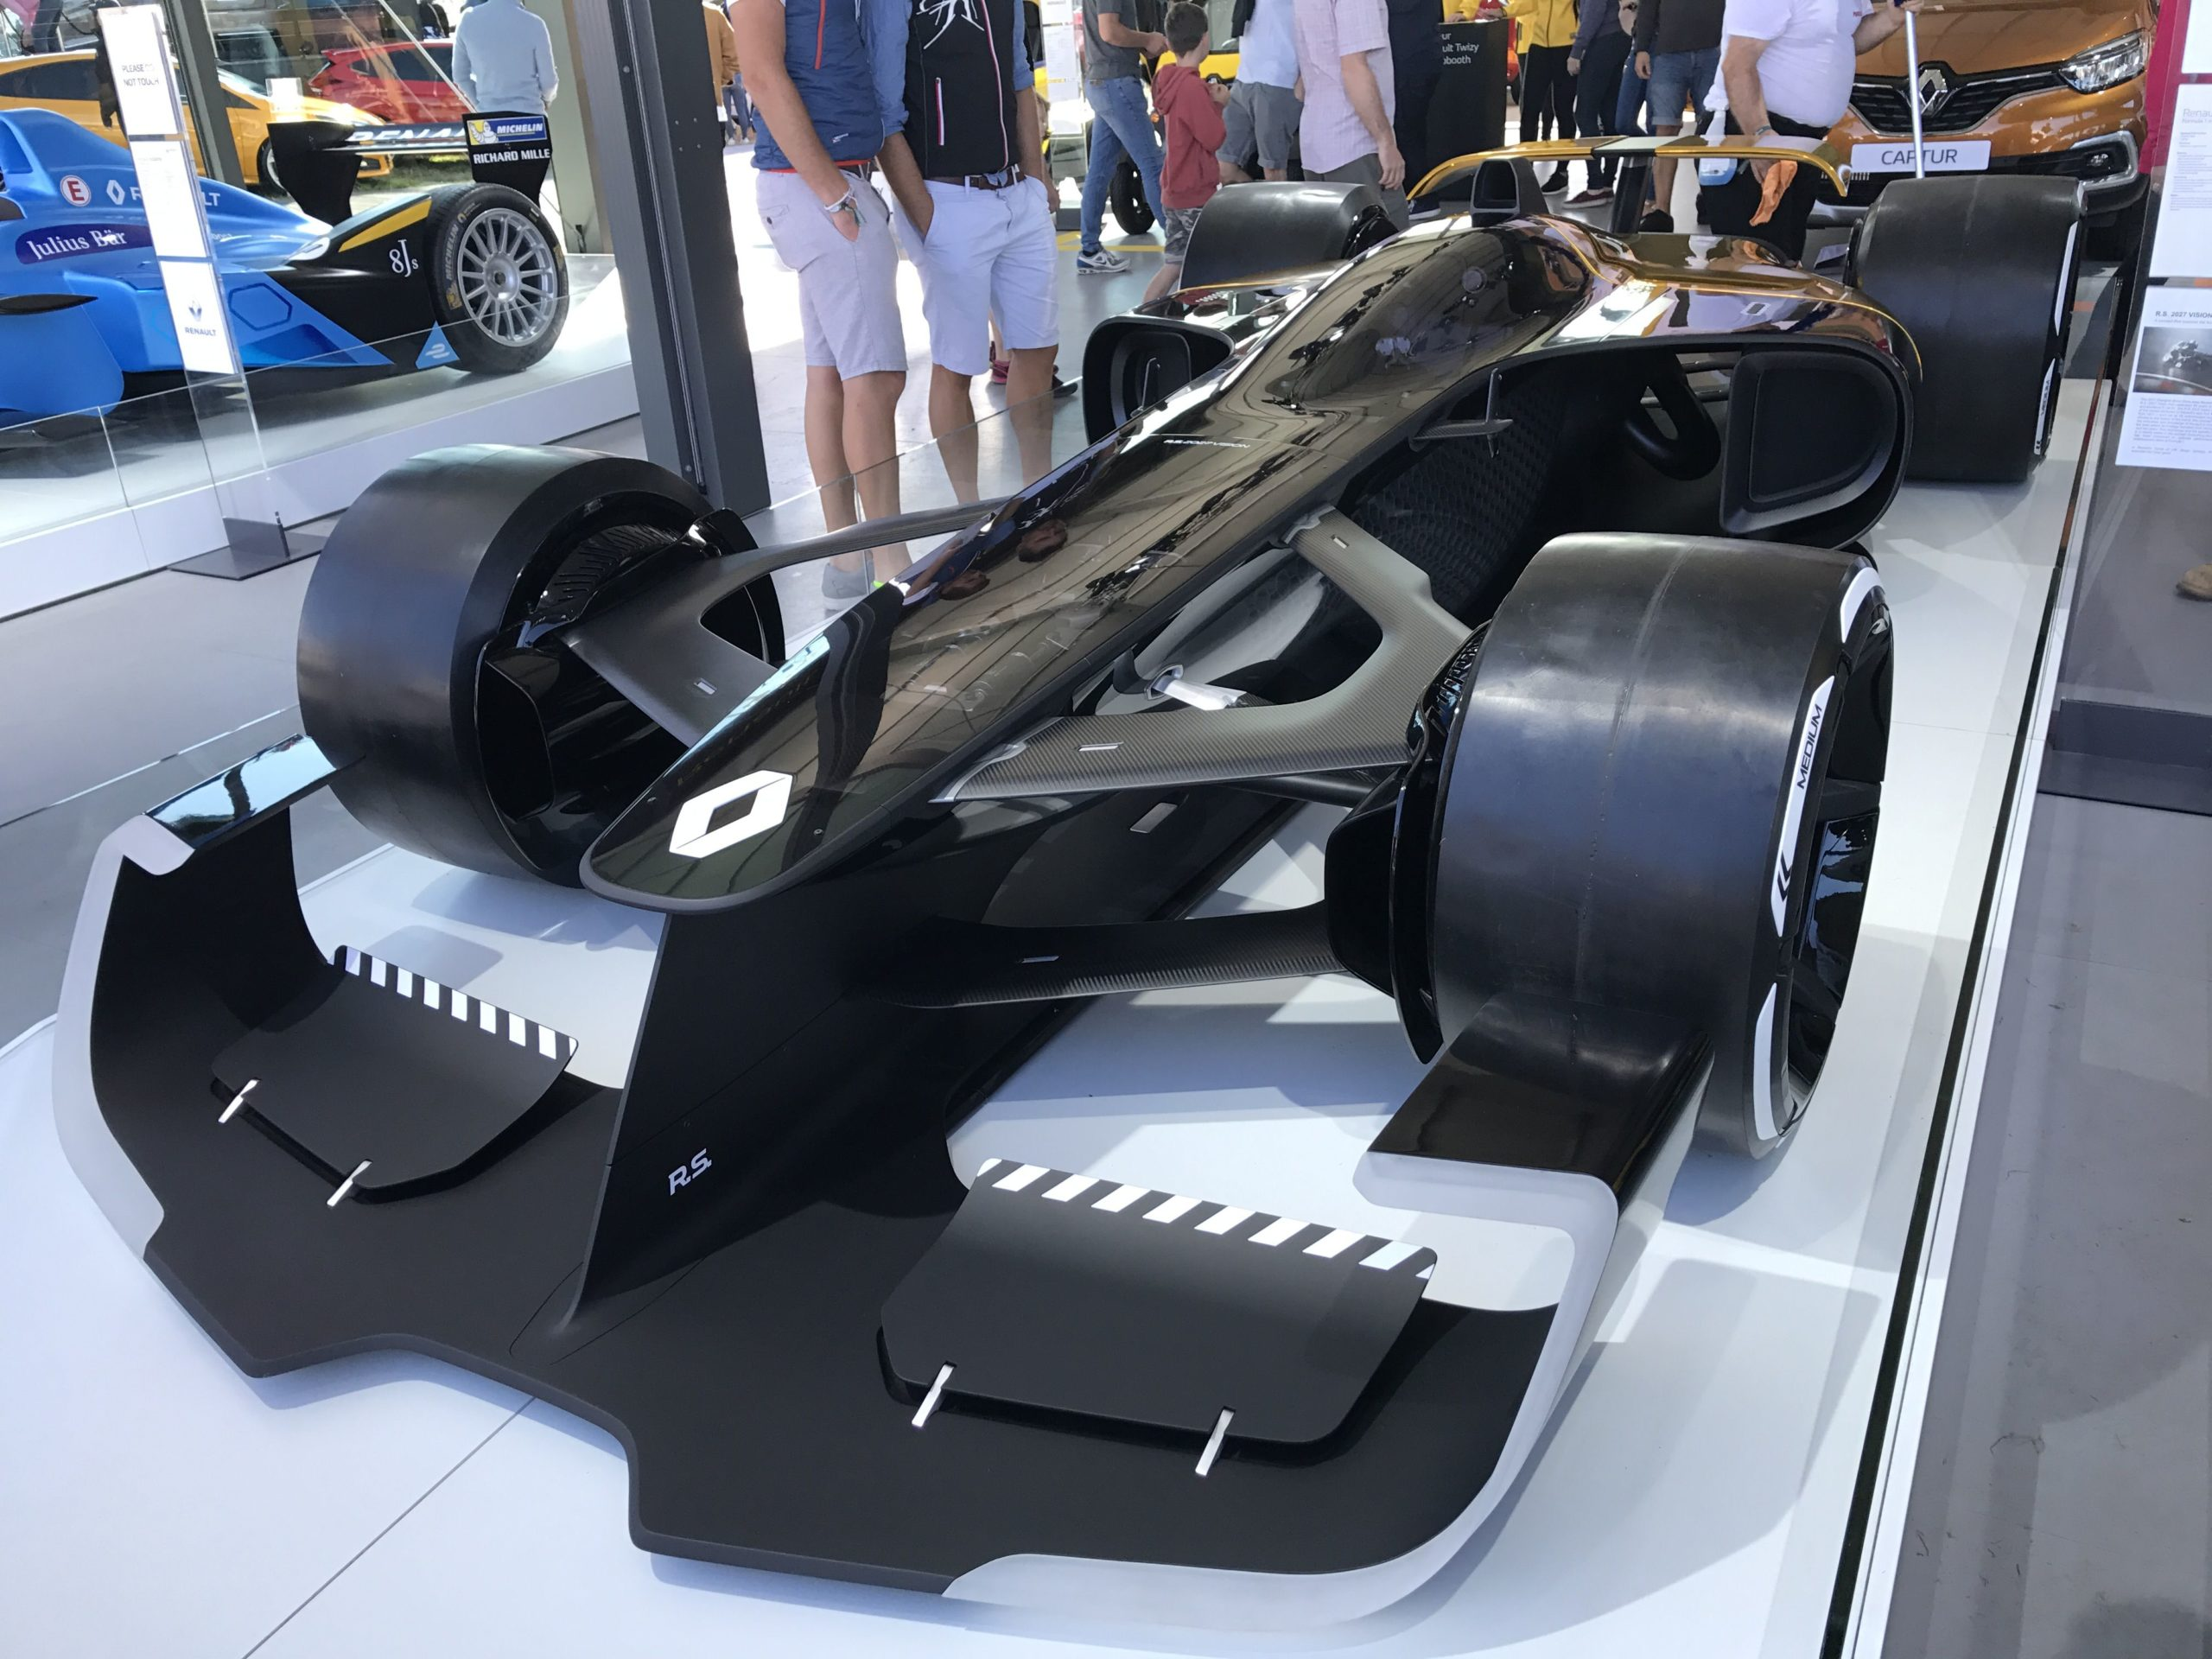 Renault concept racing car (seen at Goodwood FOS) – Andy Pidgeon